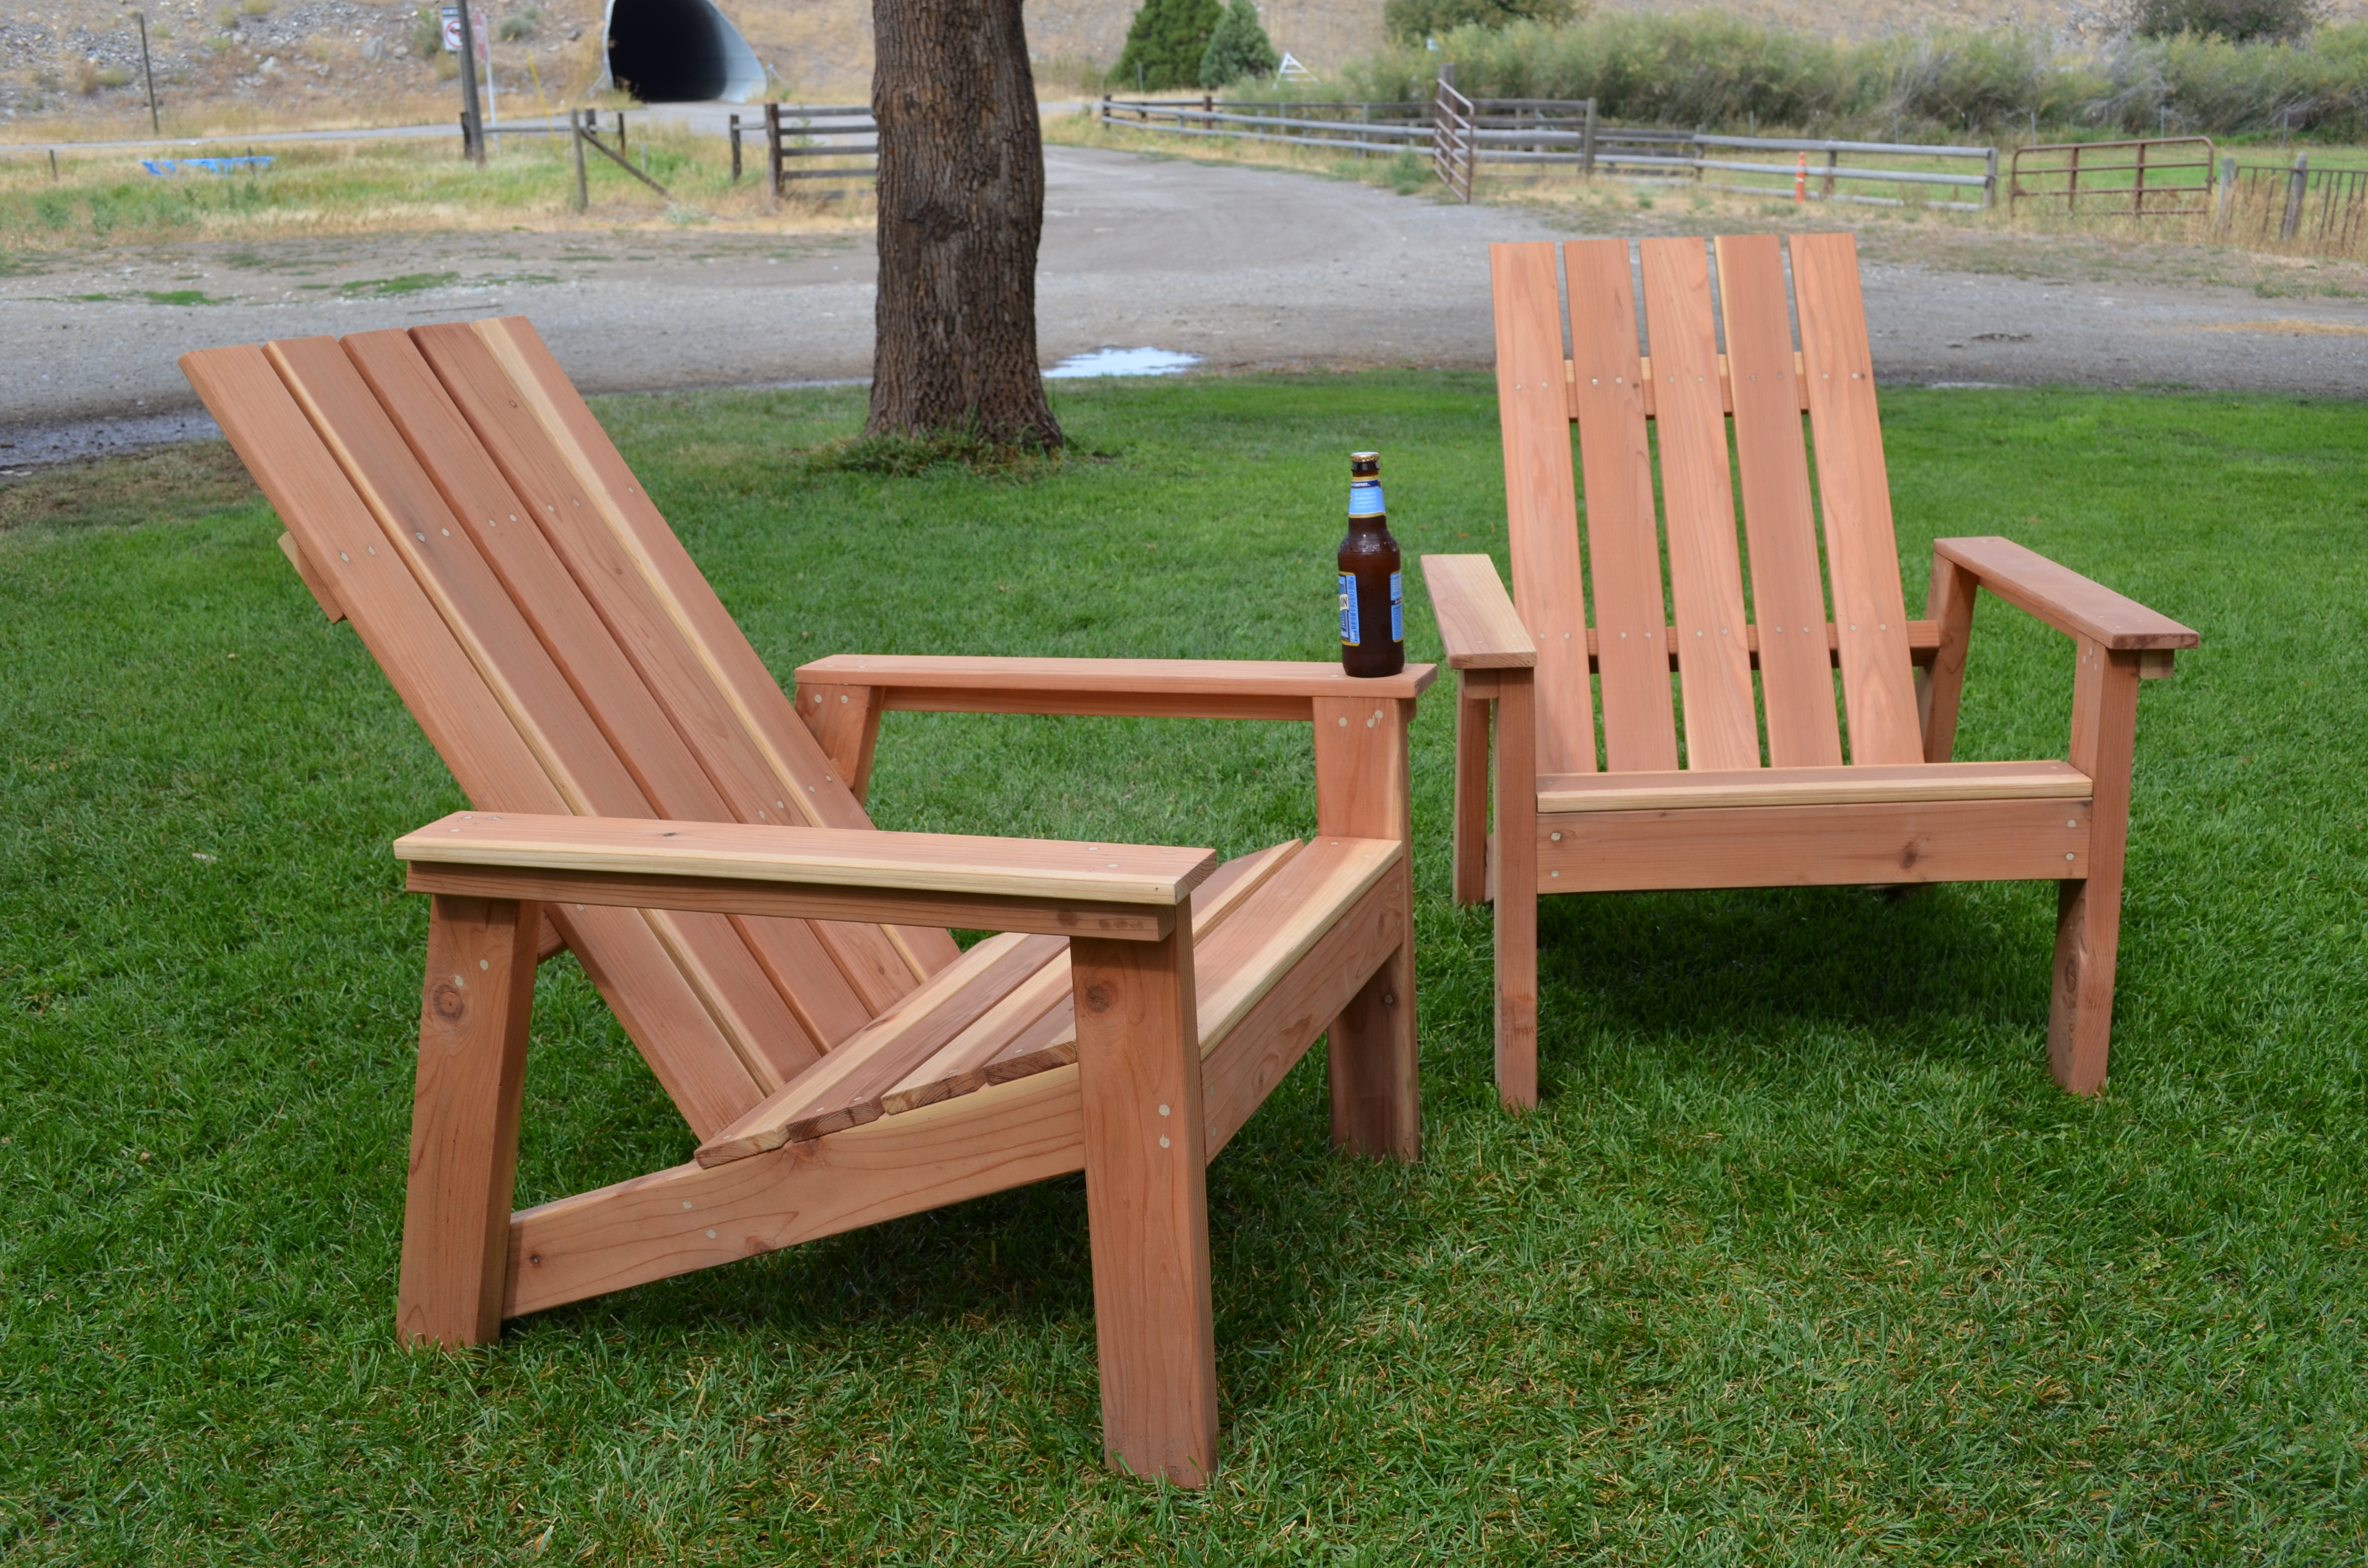 First Build - Redwood Adirondack Chairs | Do It Yourself Home Projects ...